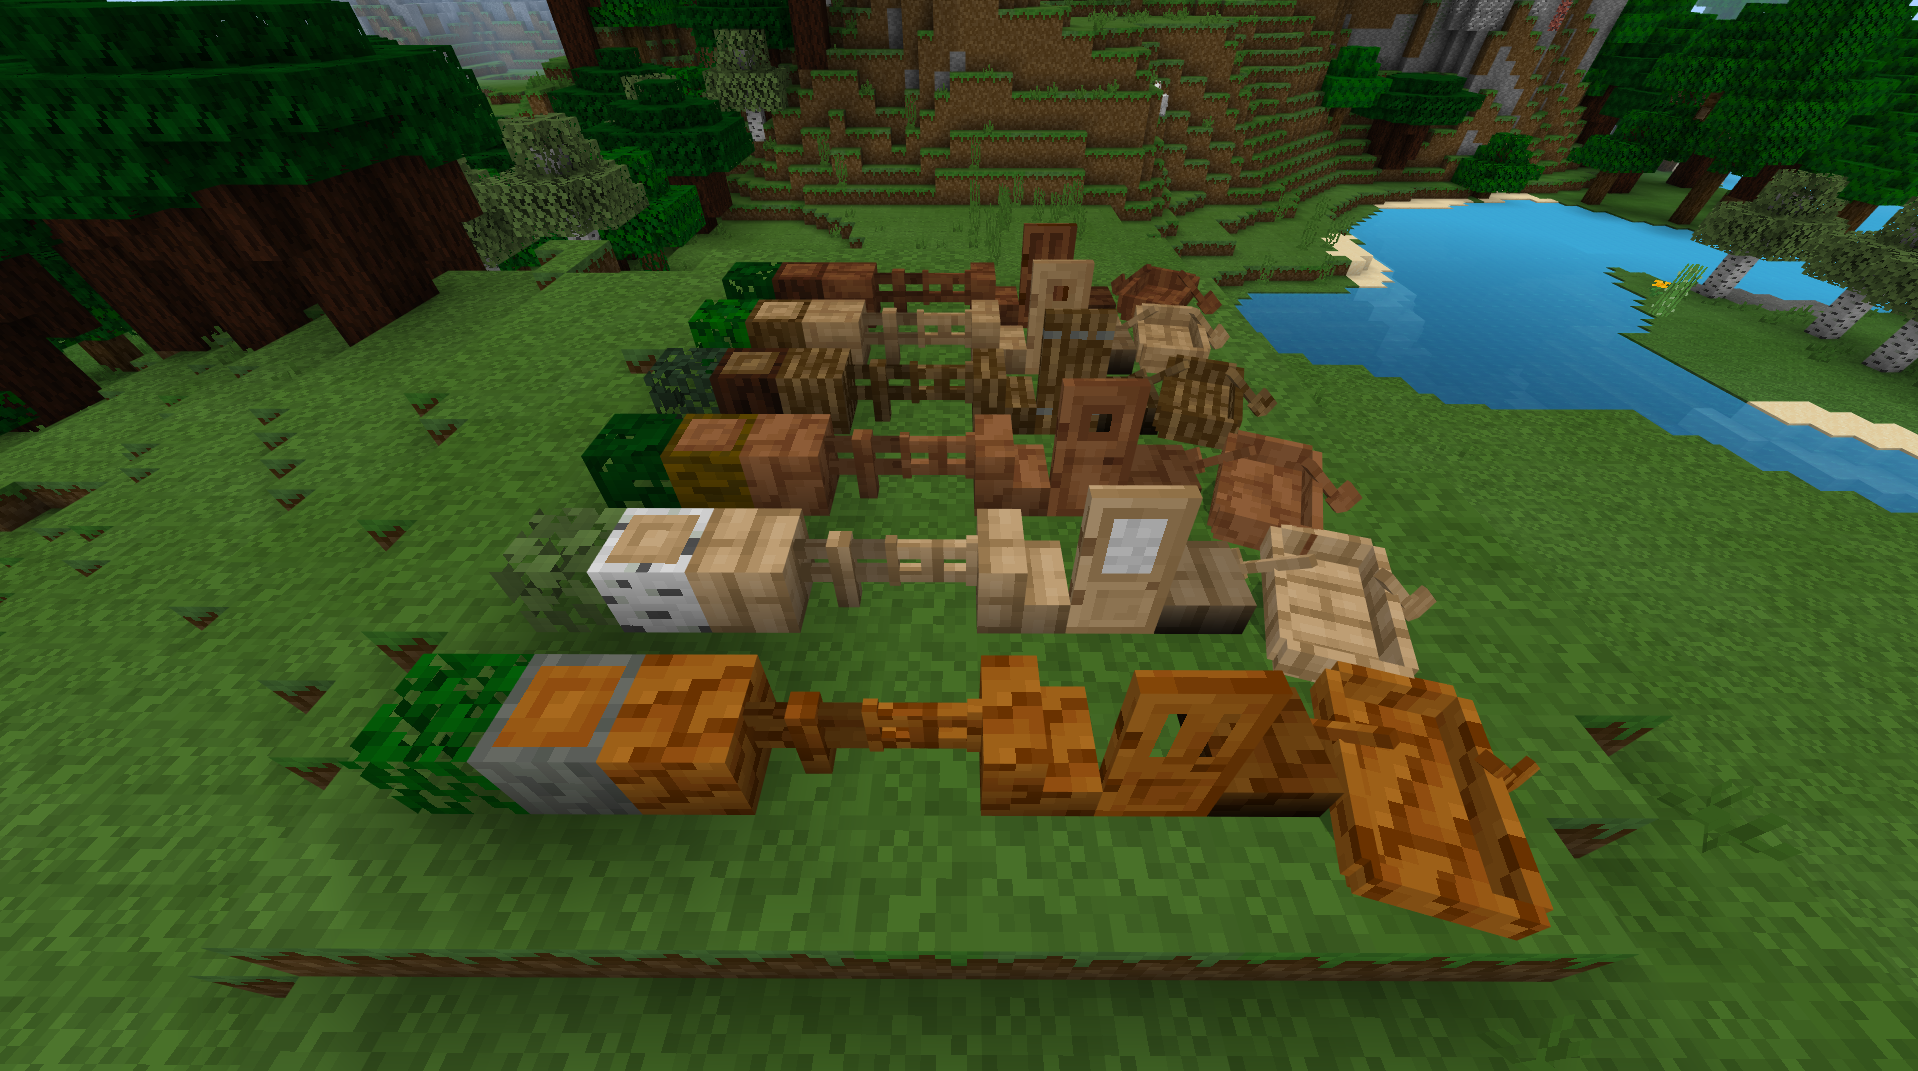 Wood textures redesigned (oak, jungle, birch, acacia, spruce)